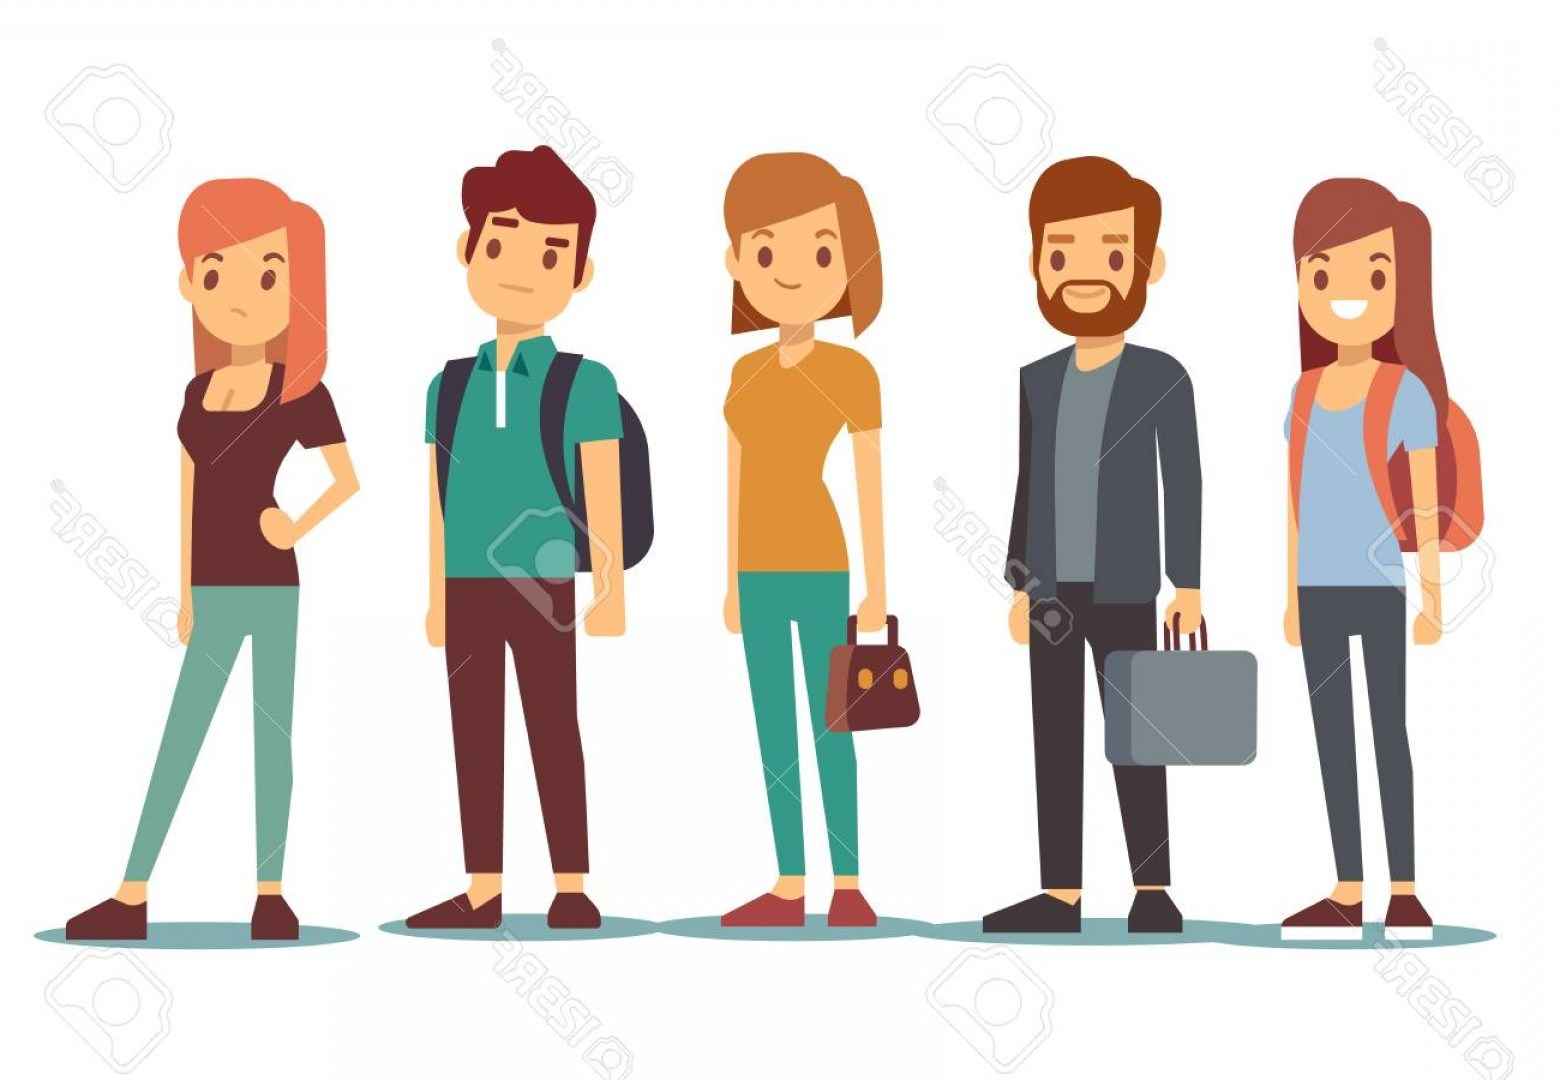 Line of people clipart graphic library library People waiting in line clipart 9 » Clipart Portal graphic library library